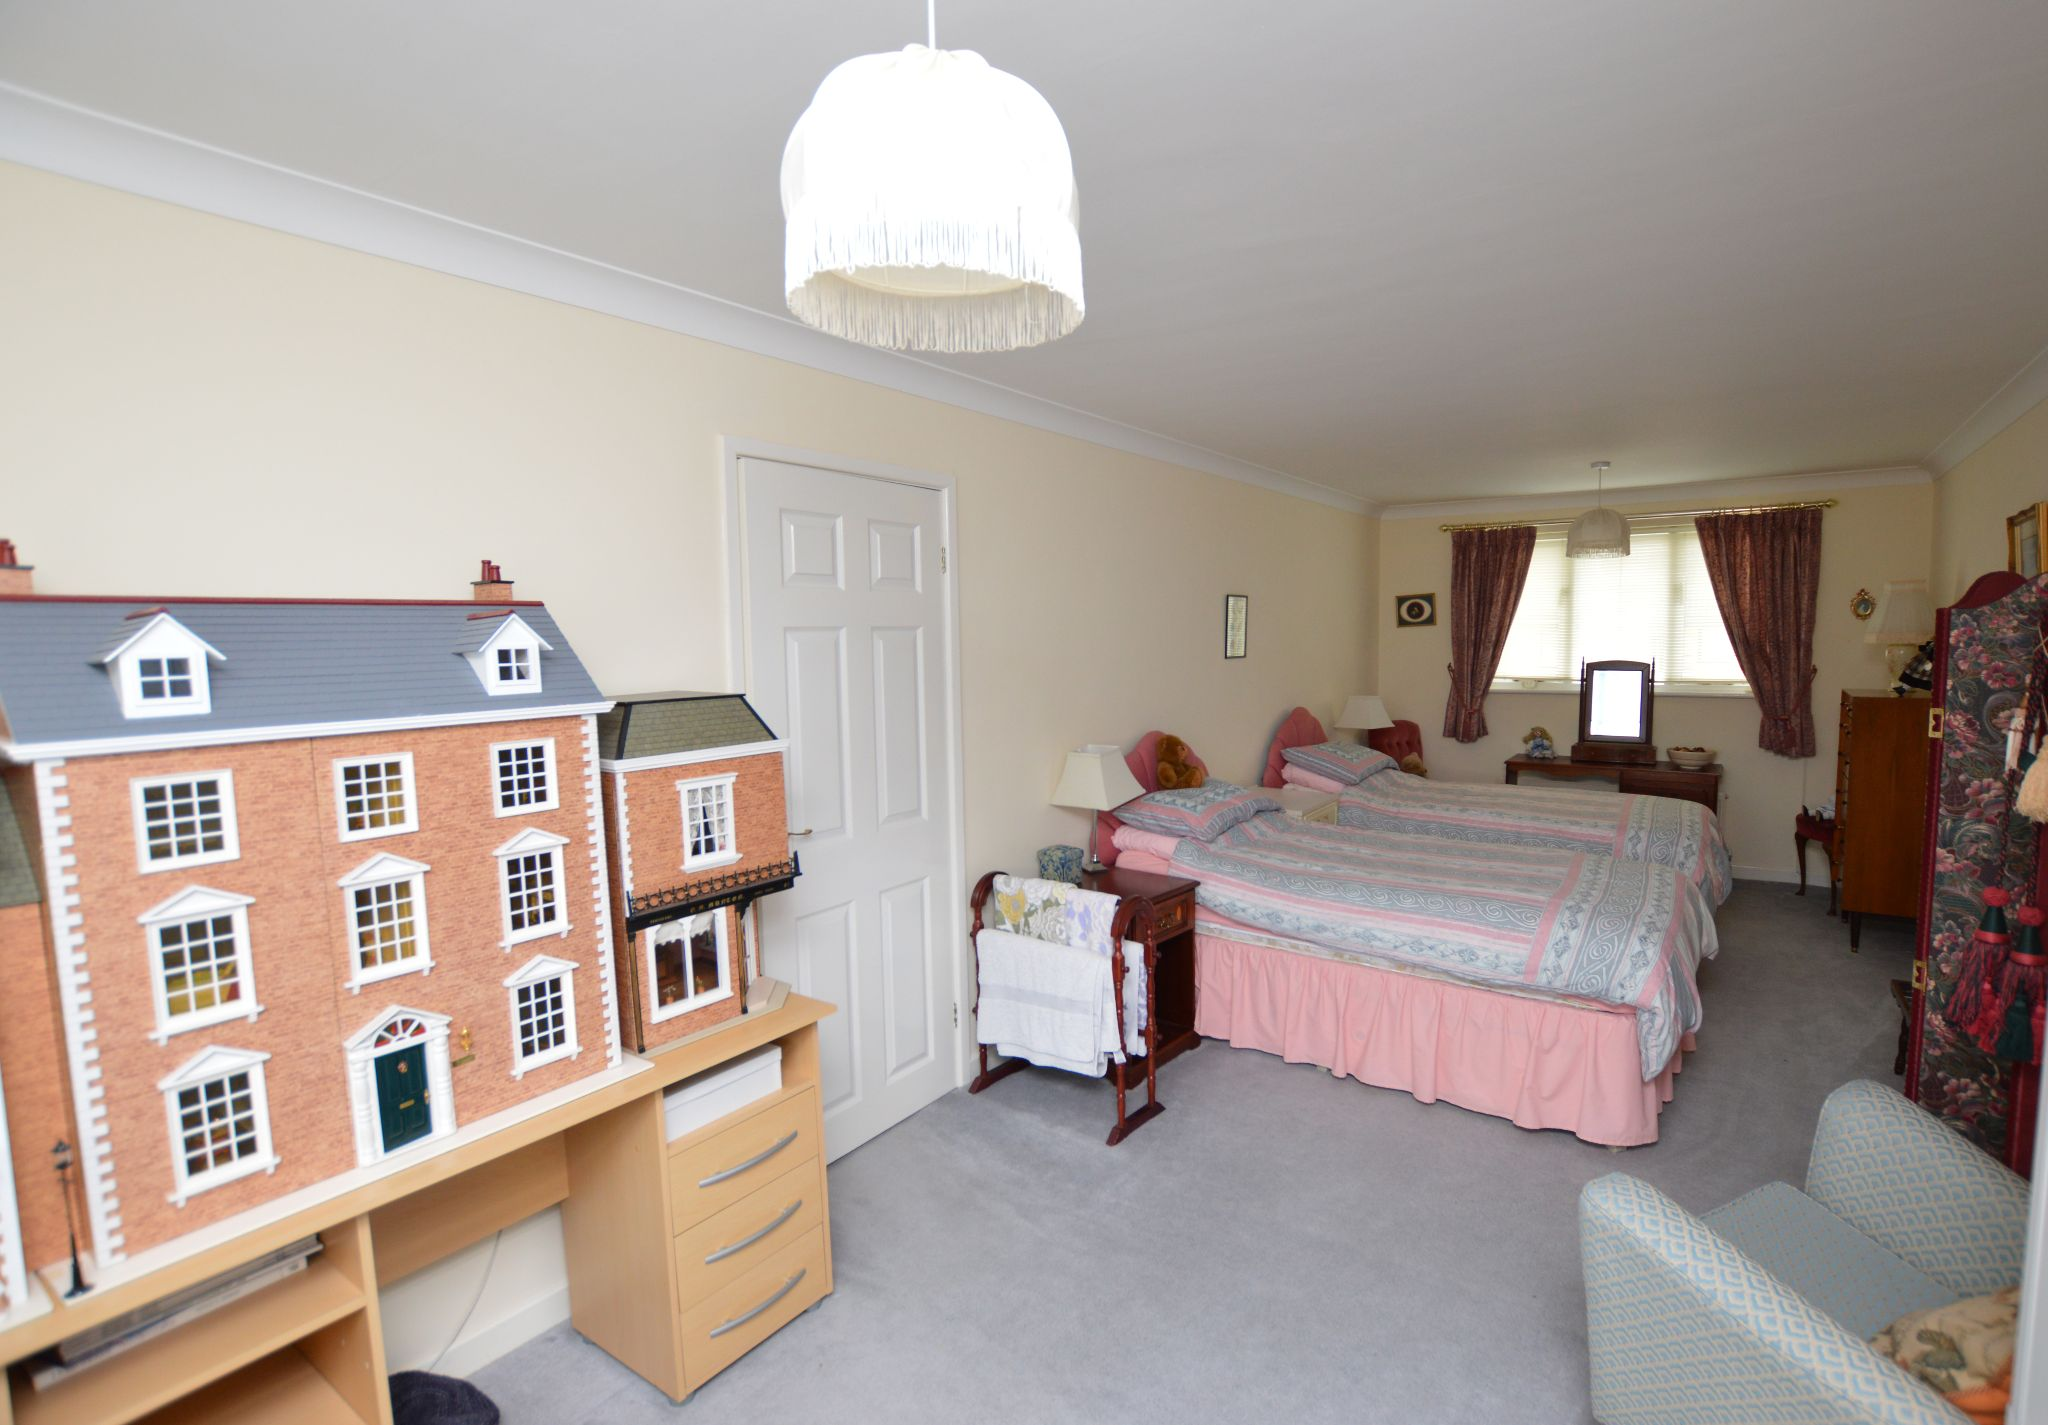 4 bedroom detached house For Sale in Abergele - Bedroom 2 View 2